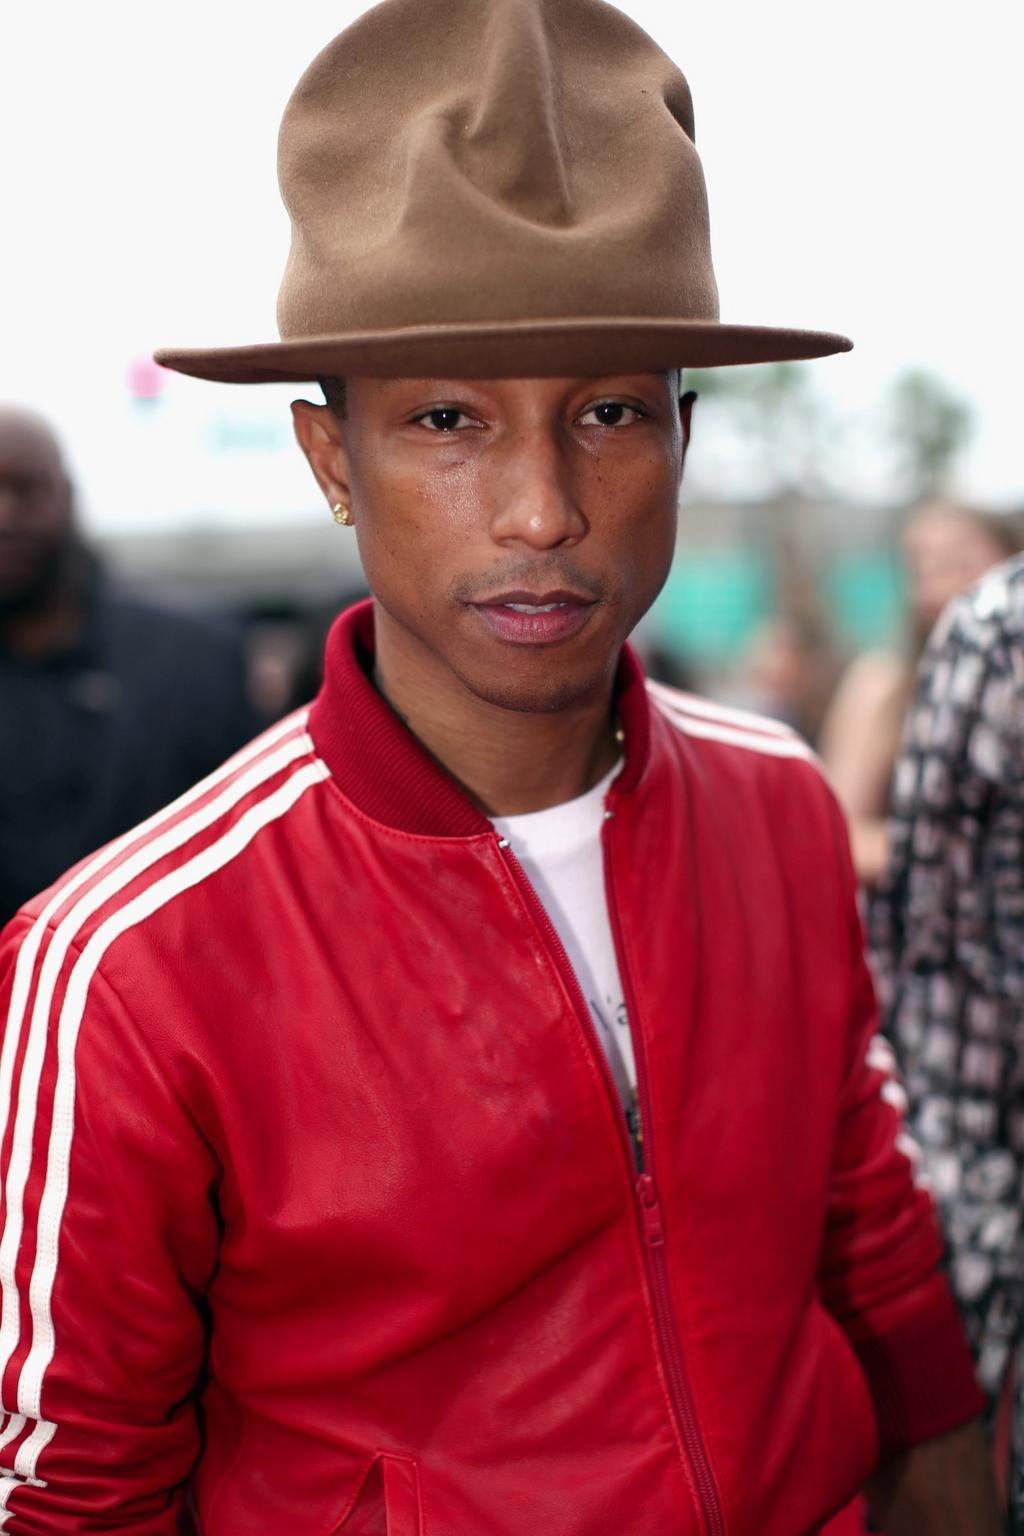 .@Pharrell's hat finally gets the home it deserves: http://t.co/xu0S0CqsZT http://t.co/53C47CaQm9